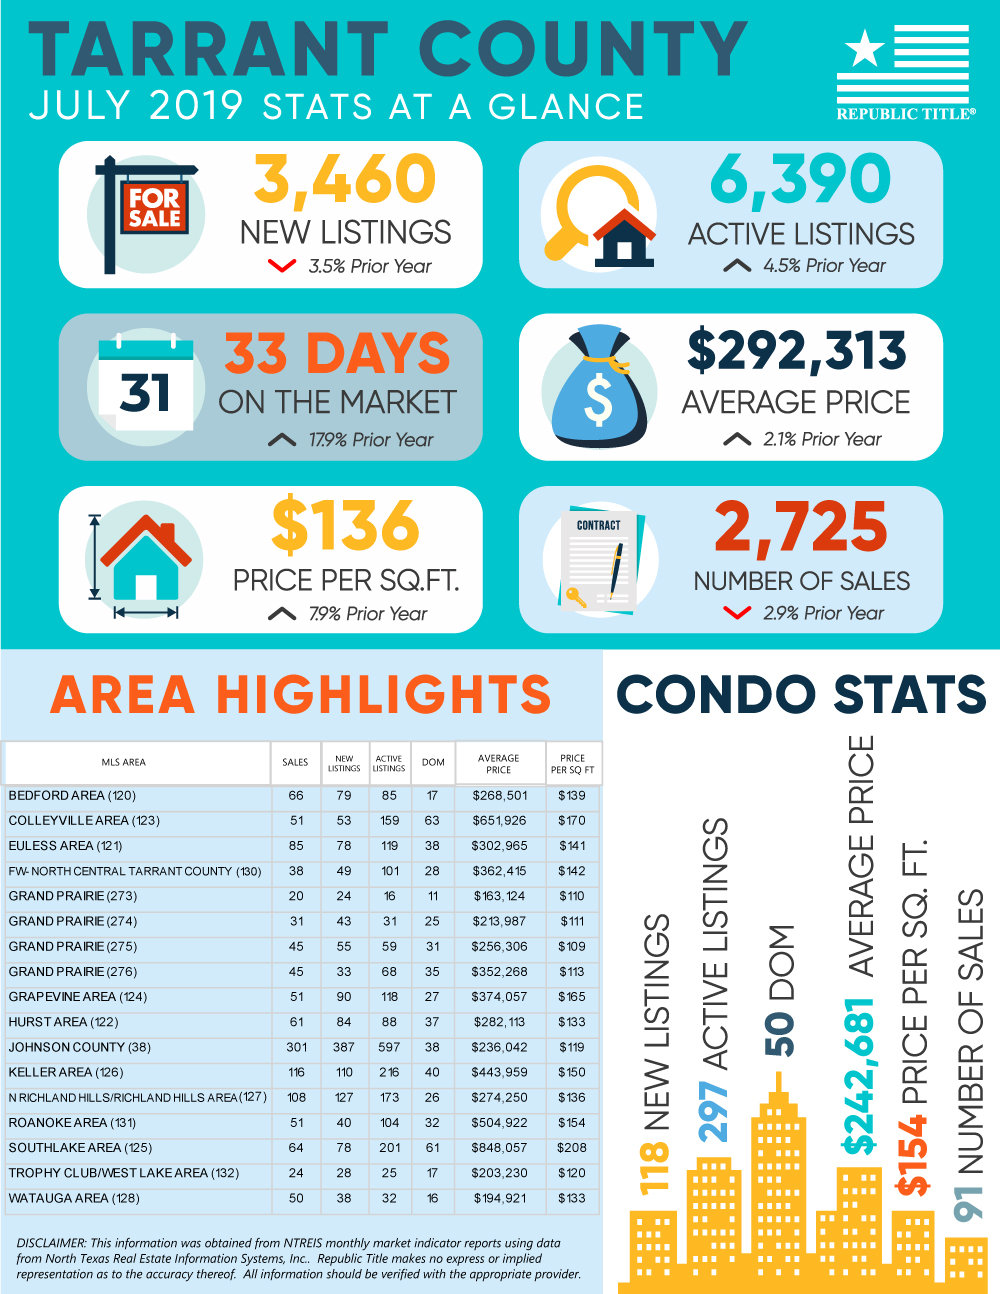 Tarrant County, TX Housing Market Update - July 2019 Home & Condo Stats